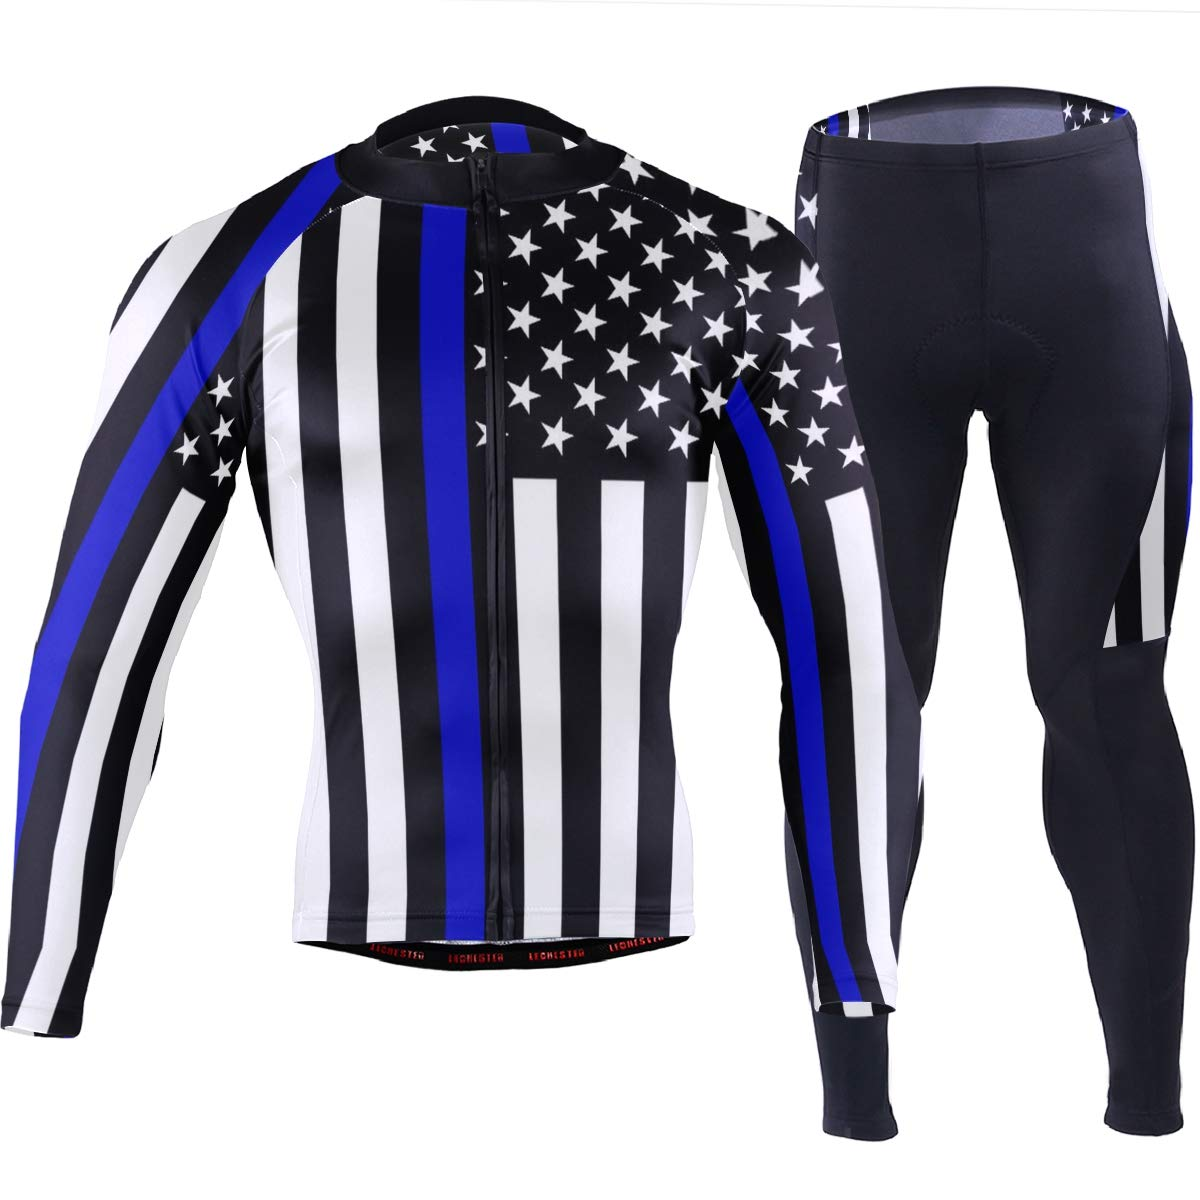 CHINEIN Men's Cycling Jersey Long Sleeve with 3 Rear Pockets Suit Police Thin Blue Line American Flag by CHINEIN